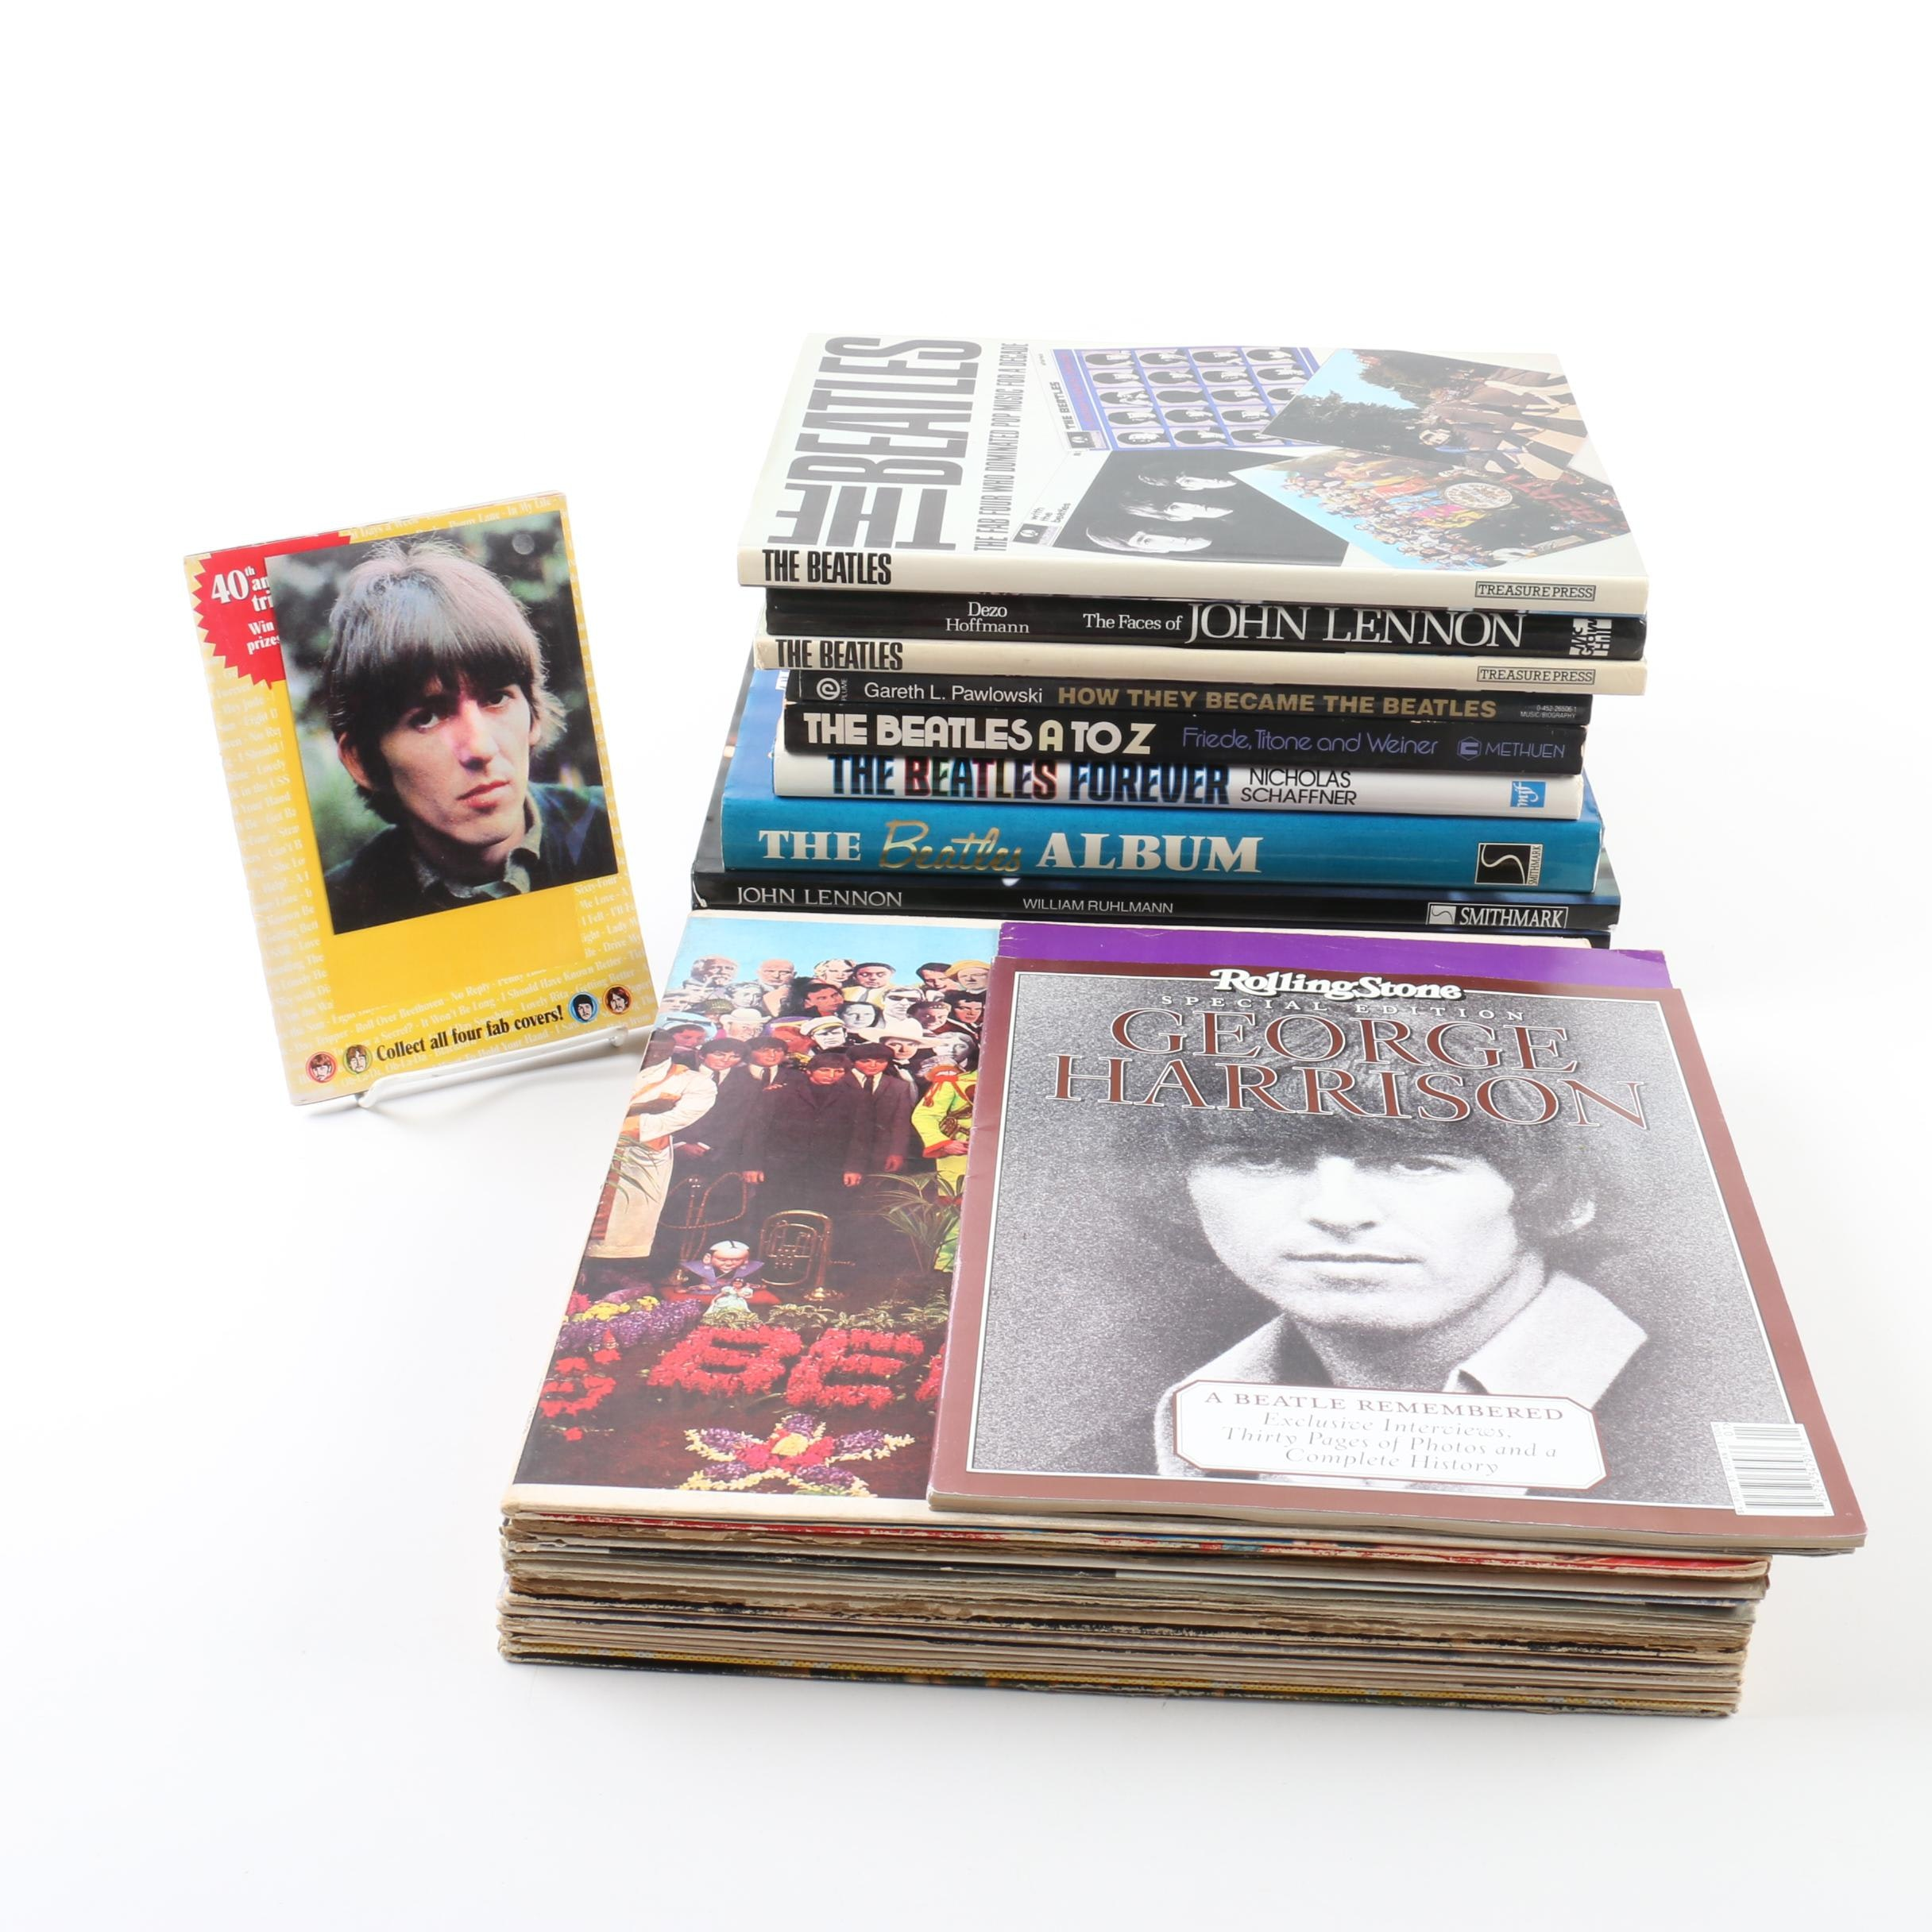 Beatles Records with Magazines and Books